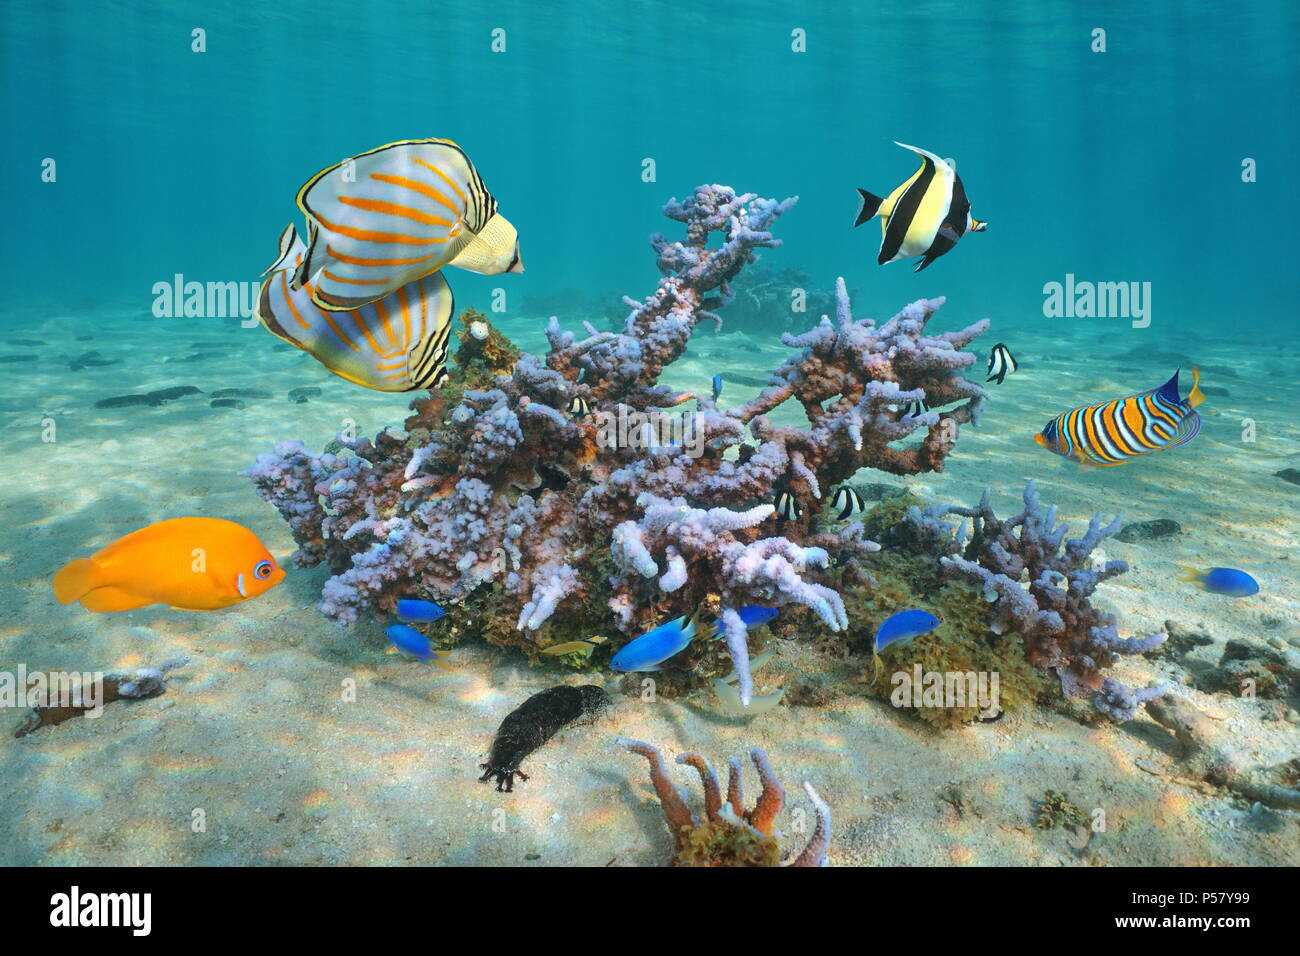 Colorful tropical fishes with Montipora coral underwater, Pacific ocean, Polynesia, Cook islands - Stock Image